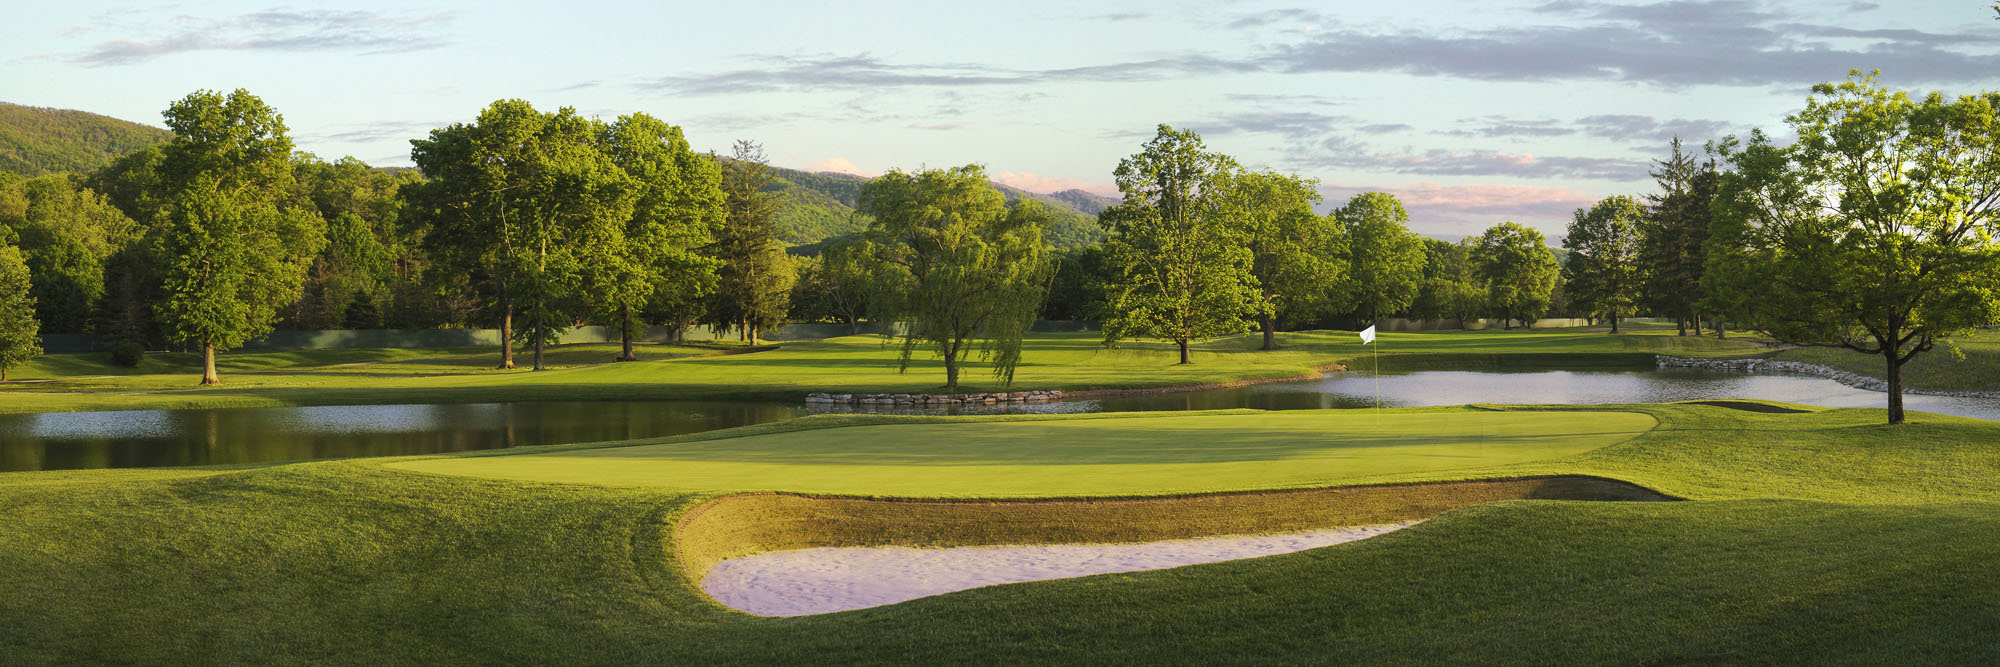 Golf Course Image - The Greenbrier Meadows Course No. 18